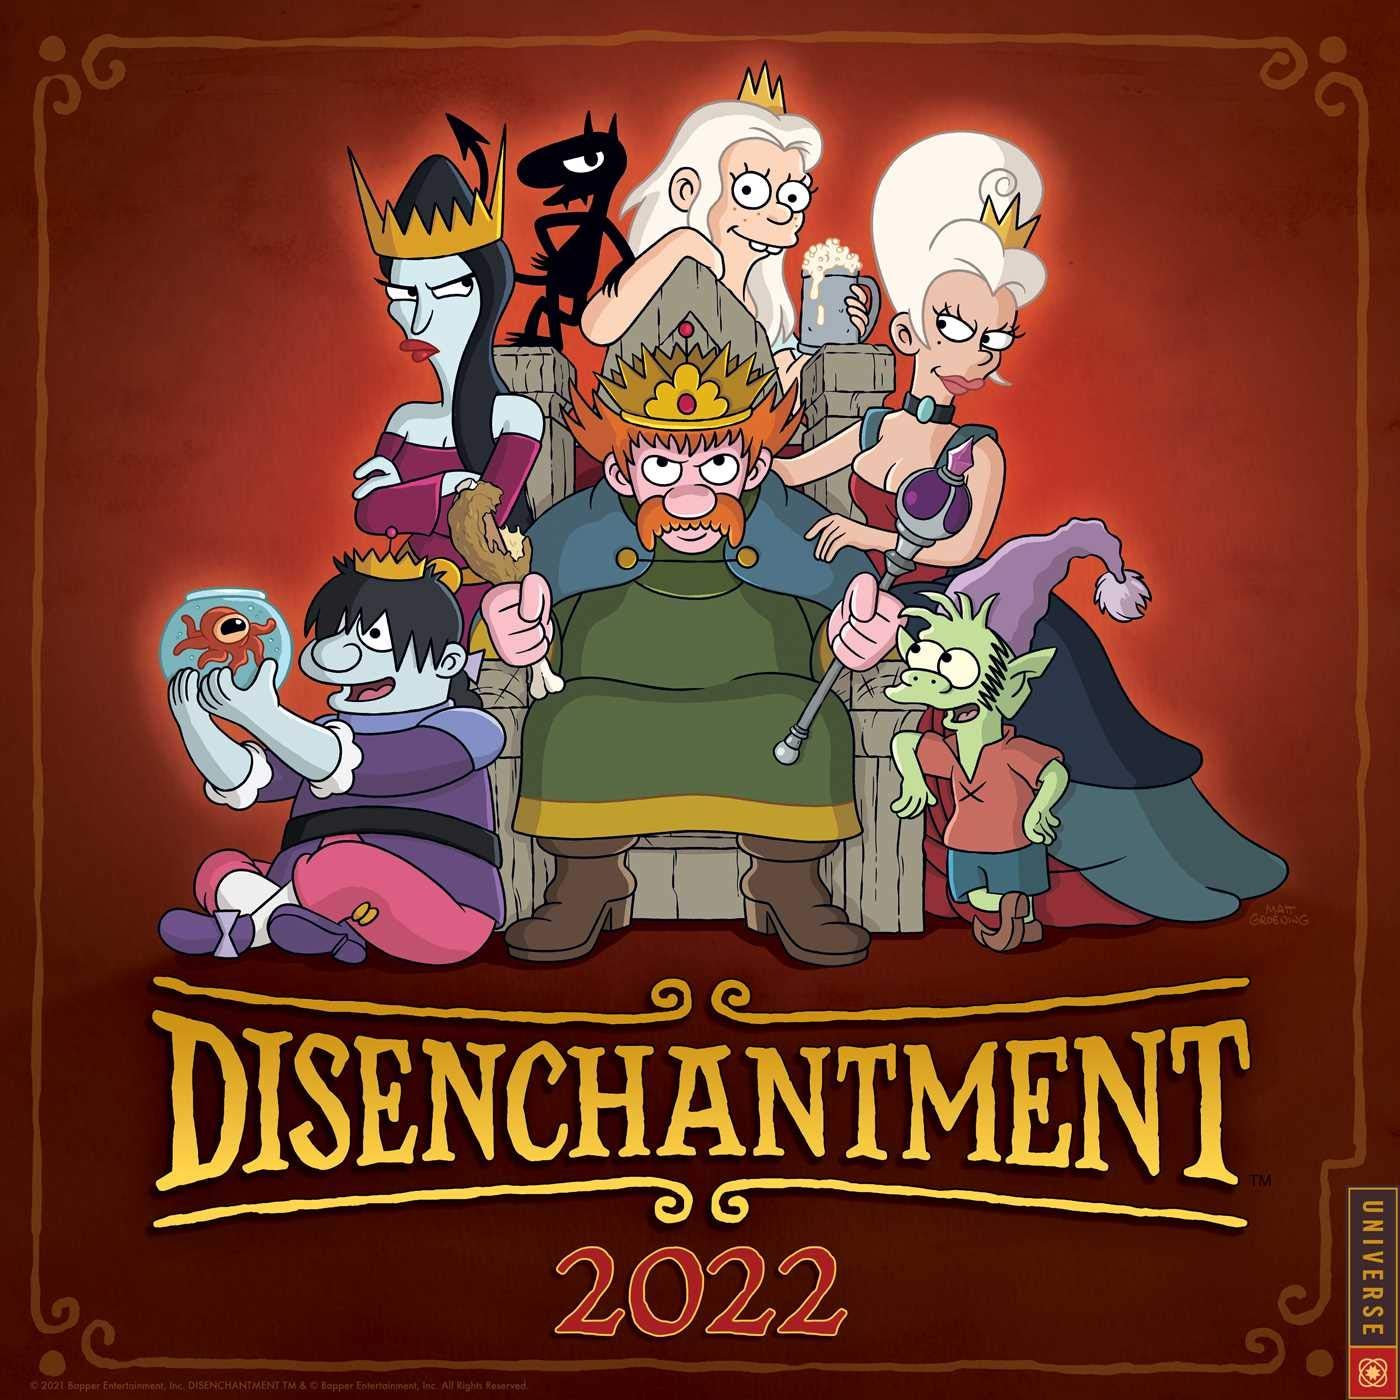 Calendar Creator 2022.Buy Disenchantment 2022 Wall Calendar Book Online At Low Prices In India Disenchantment 2022 Wall Calendar Reviews Ratings Amazon In